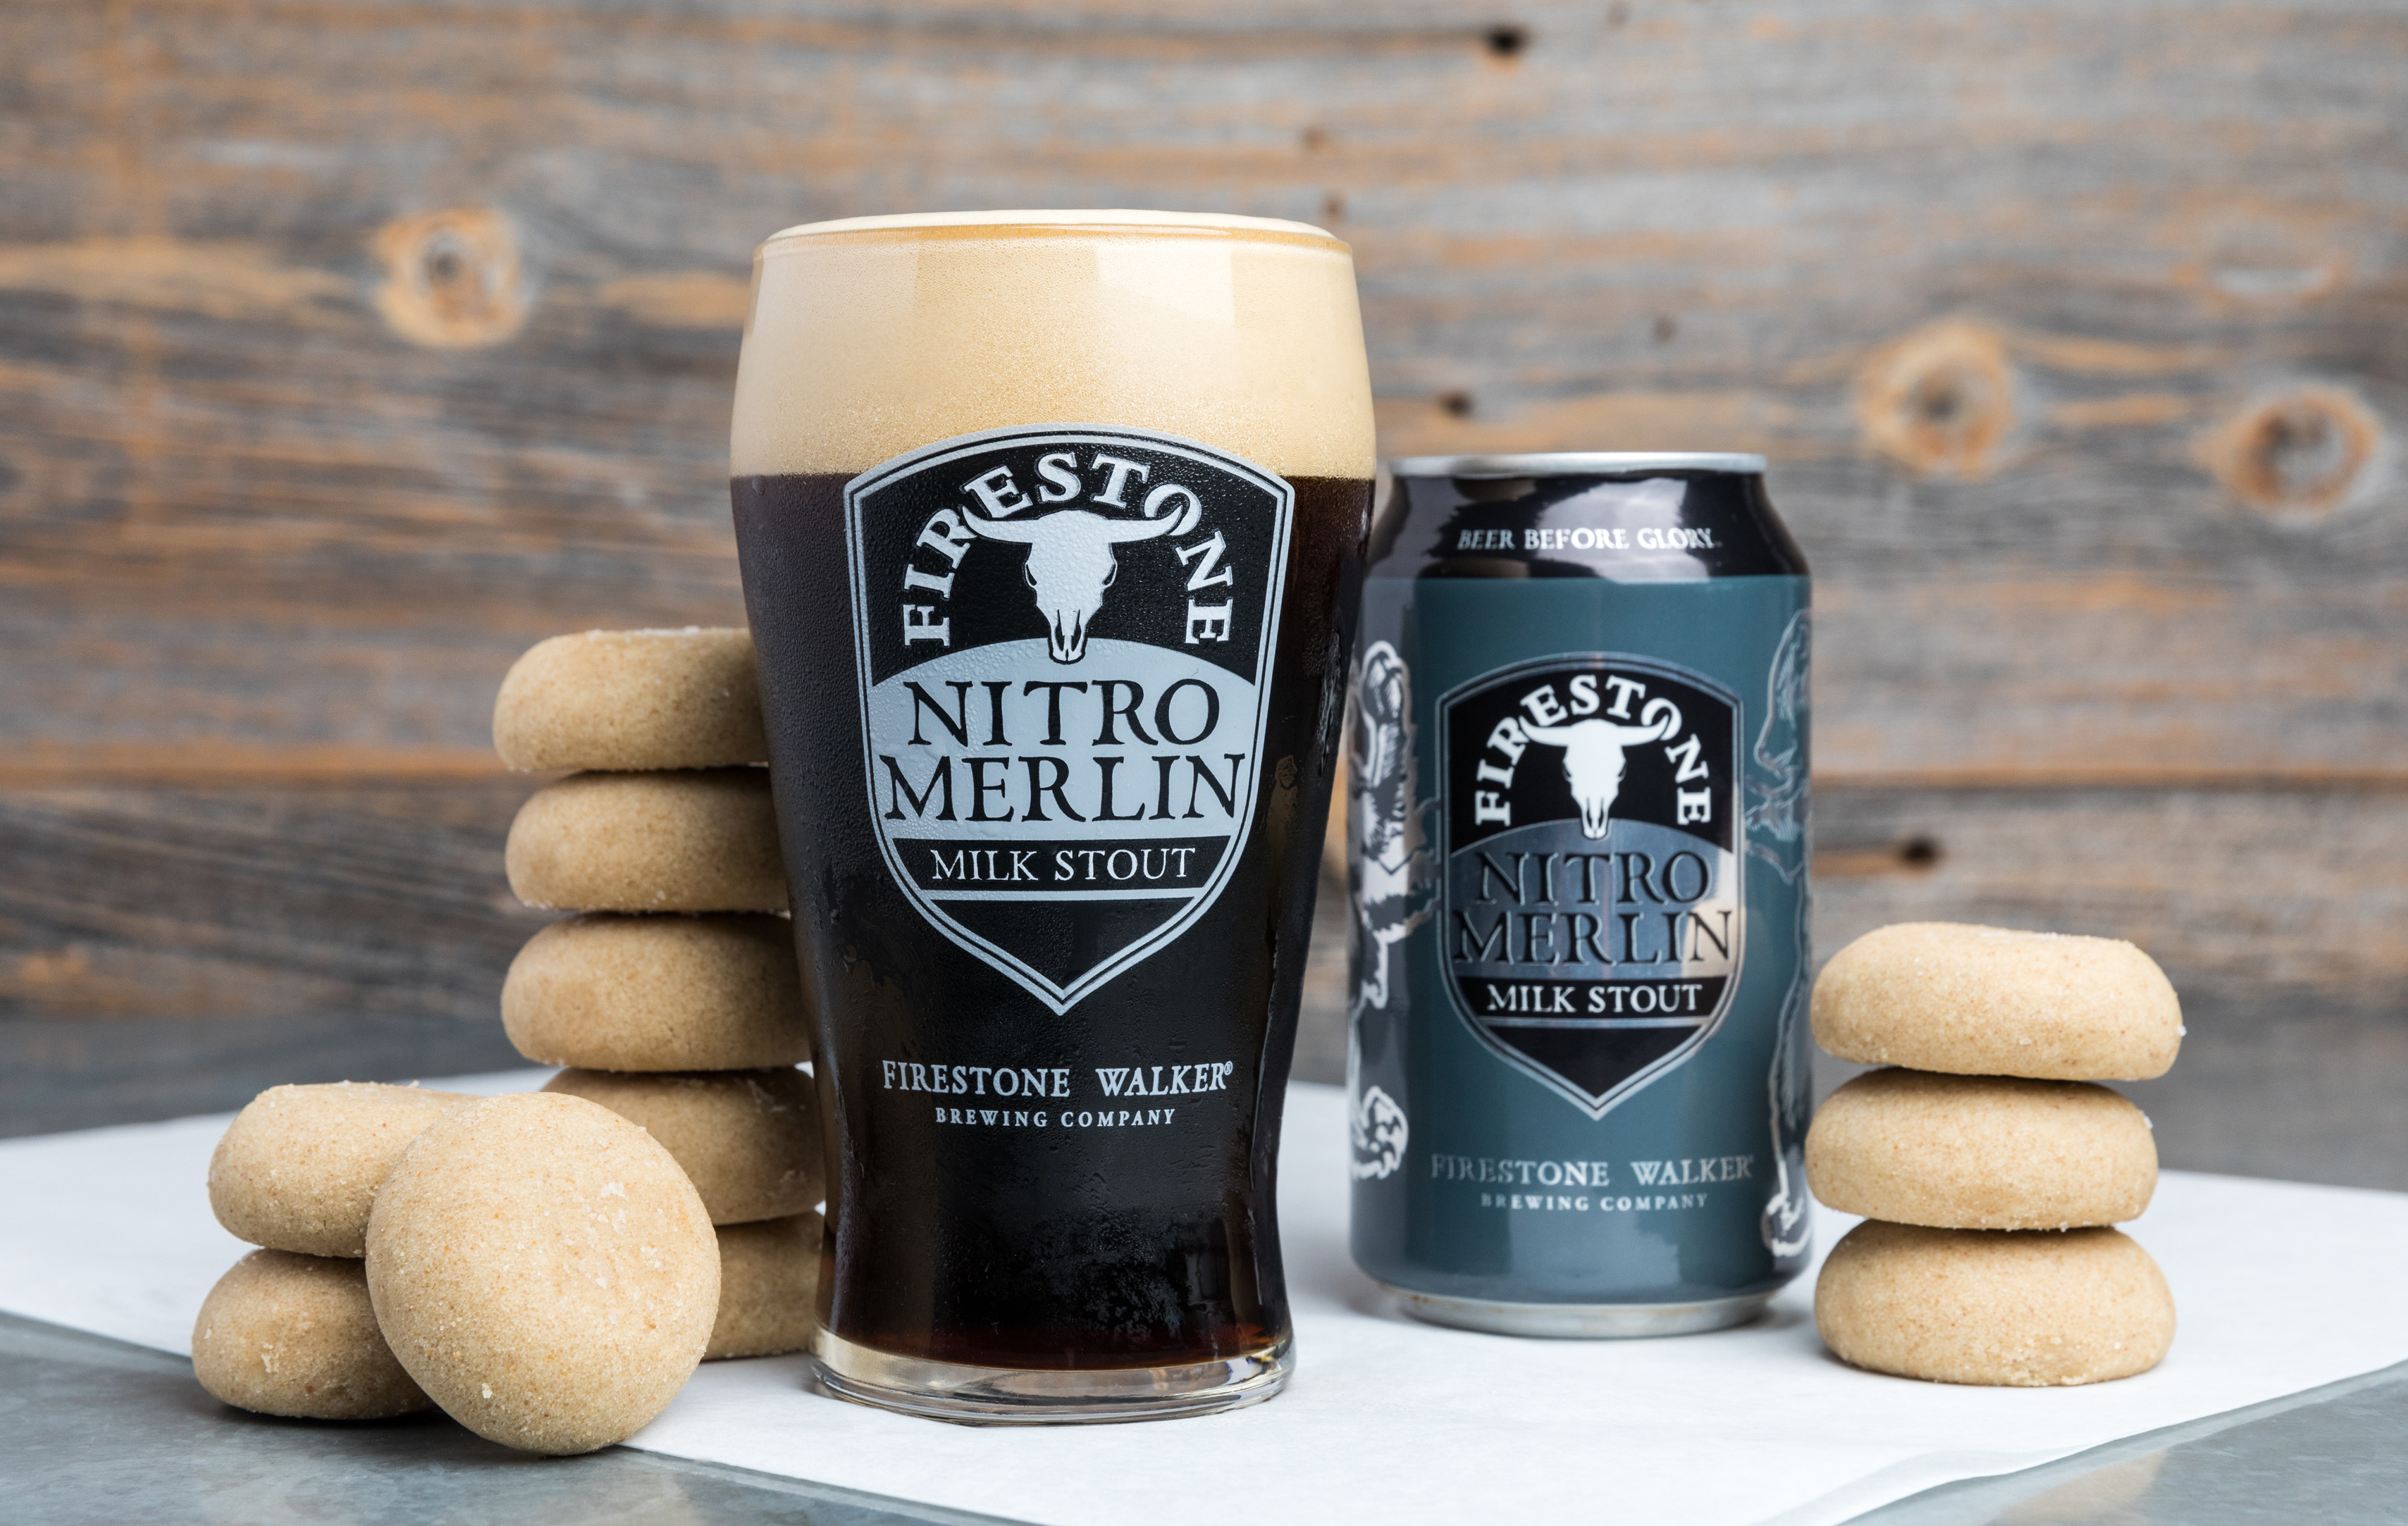 Firestone Walker Nitro Merlin Milk Stout and Brown Butter Cookies. (photo courtesy of Nick Gingold)